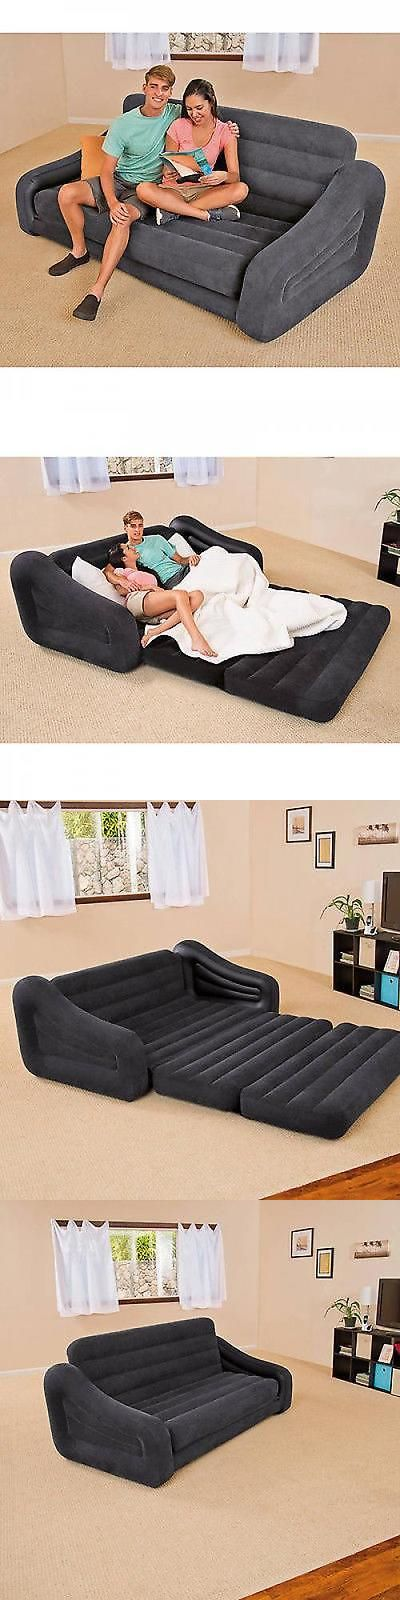 furniture: Couch Bed Sofa Sectional Sleeper Futon Living Room Furniture Loveseat Guest New BUY IT NOW ONLY: $60.97